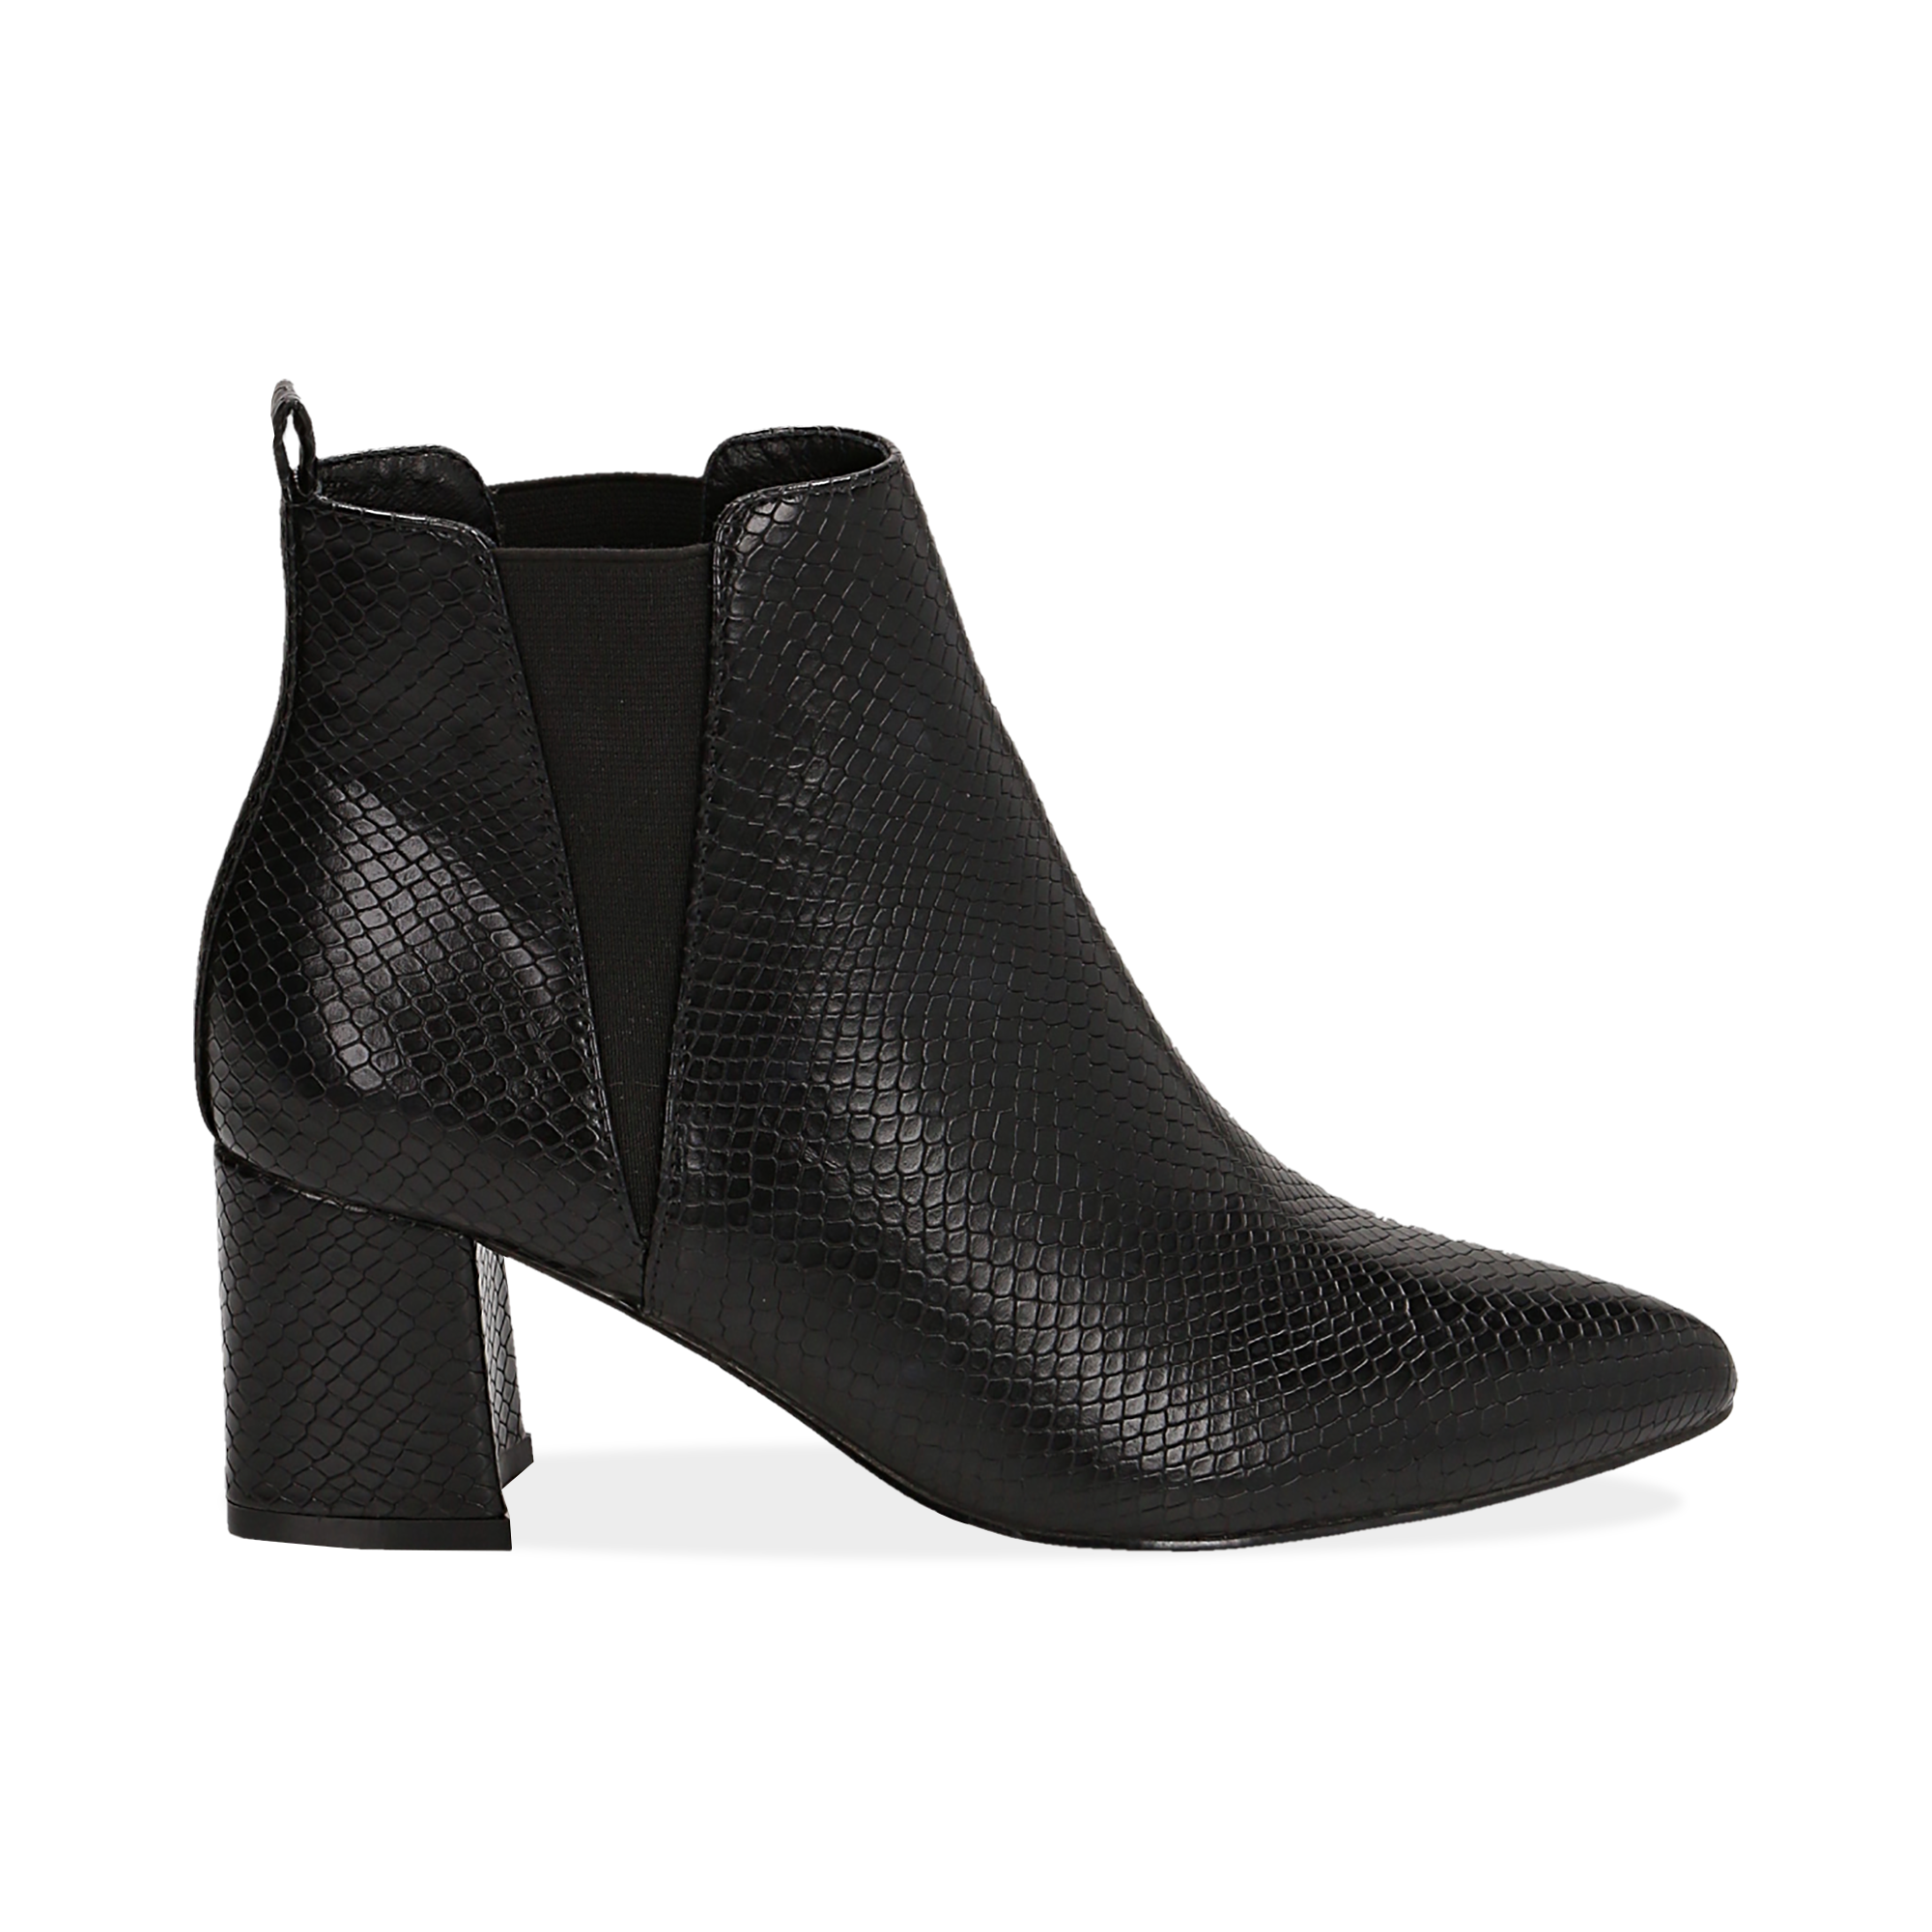 Ankle boots neri effetto snake, tacco 6 cm